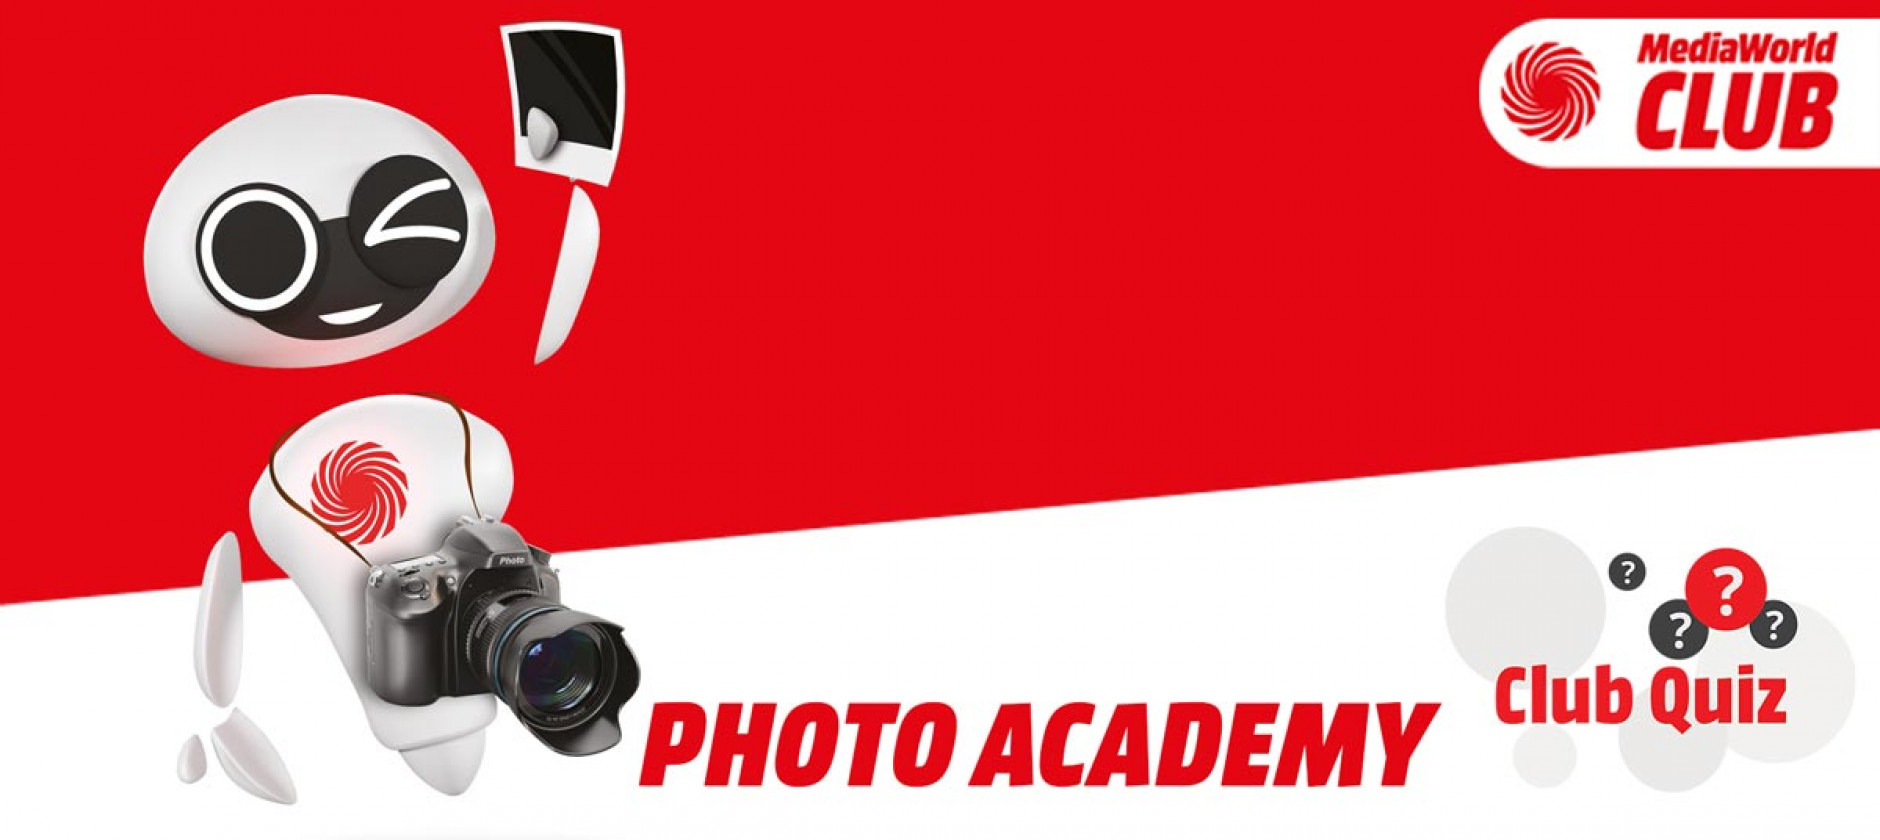 "LE RISPOSTE AL CLUB QUIZ ""photo academy"""